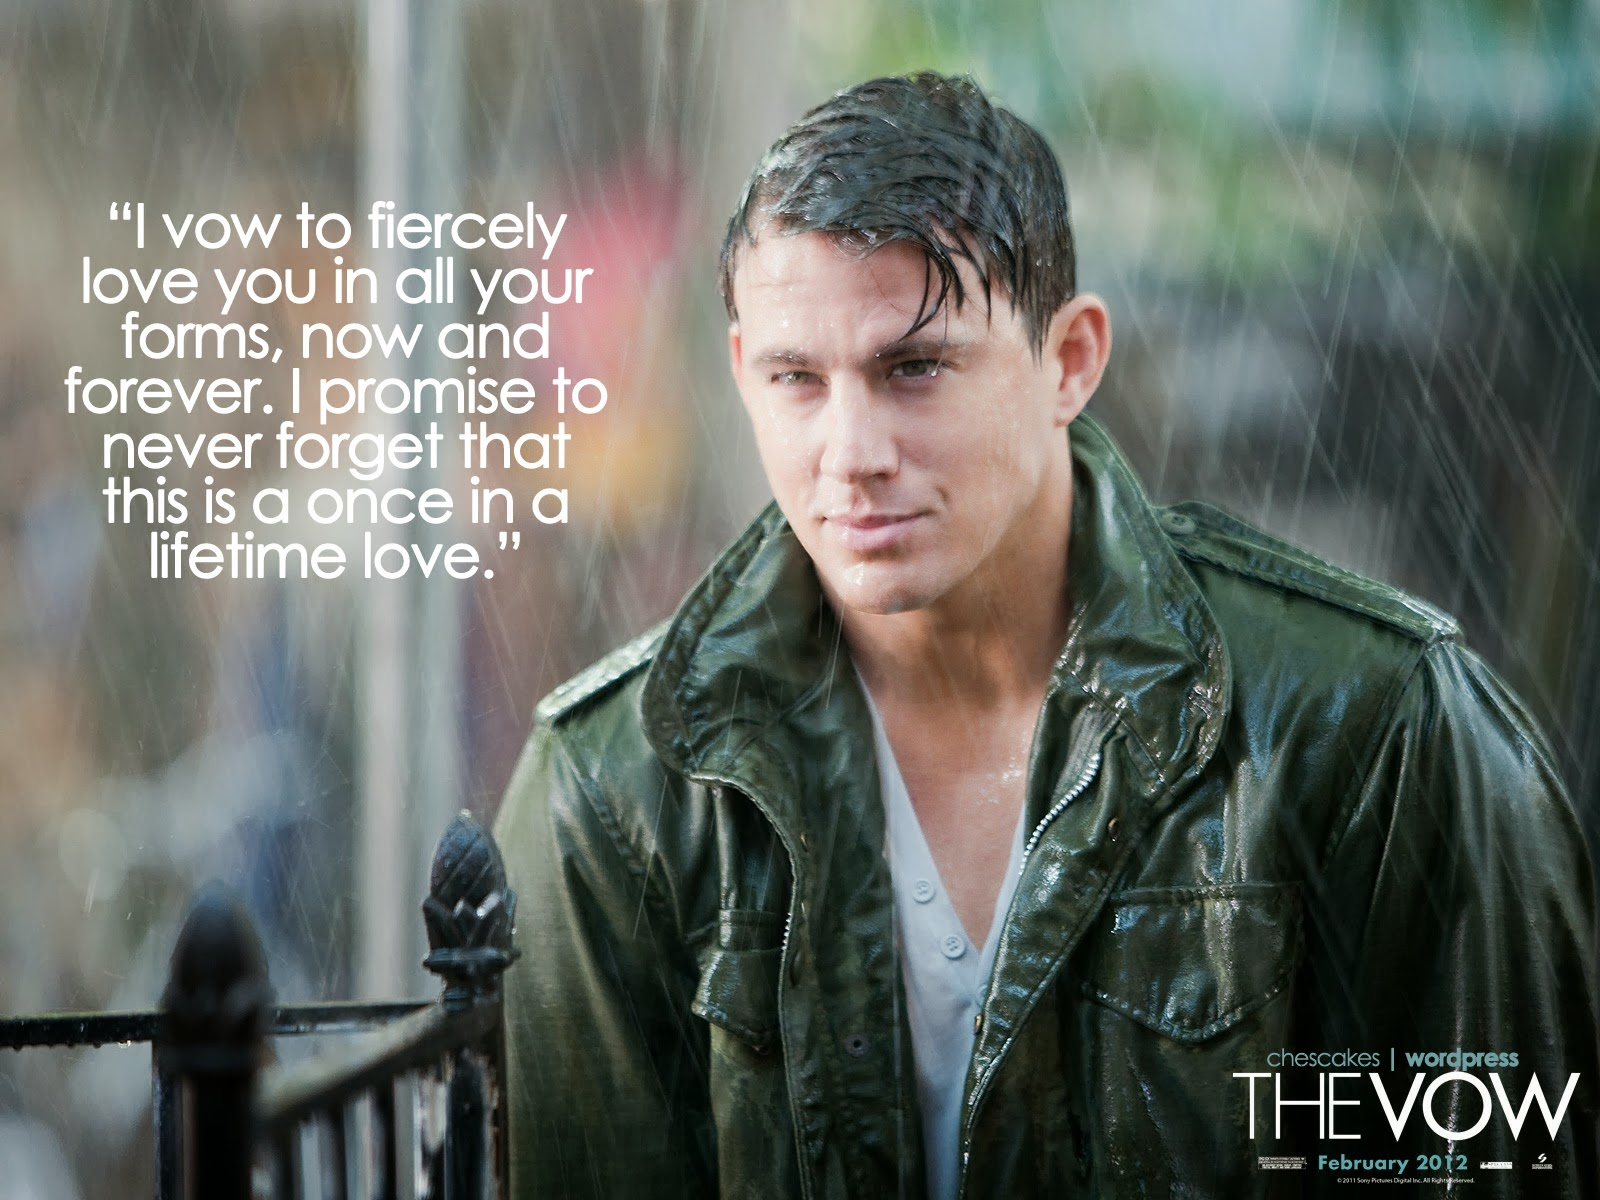 The Vow Quotes | Rainbows Lace The Vow A Story Of True Love